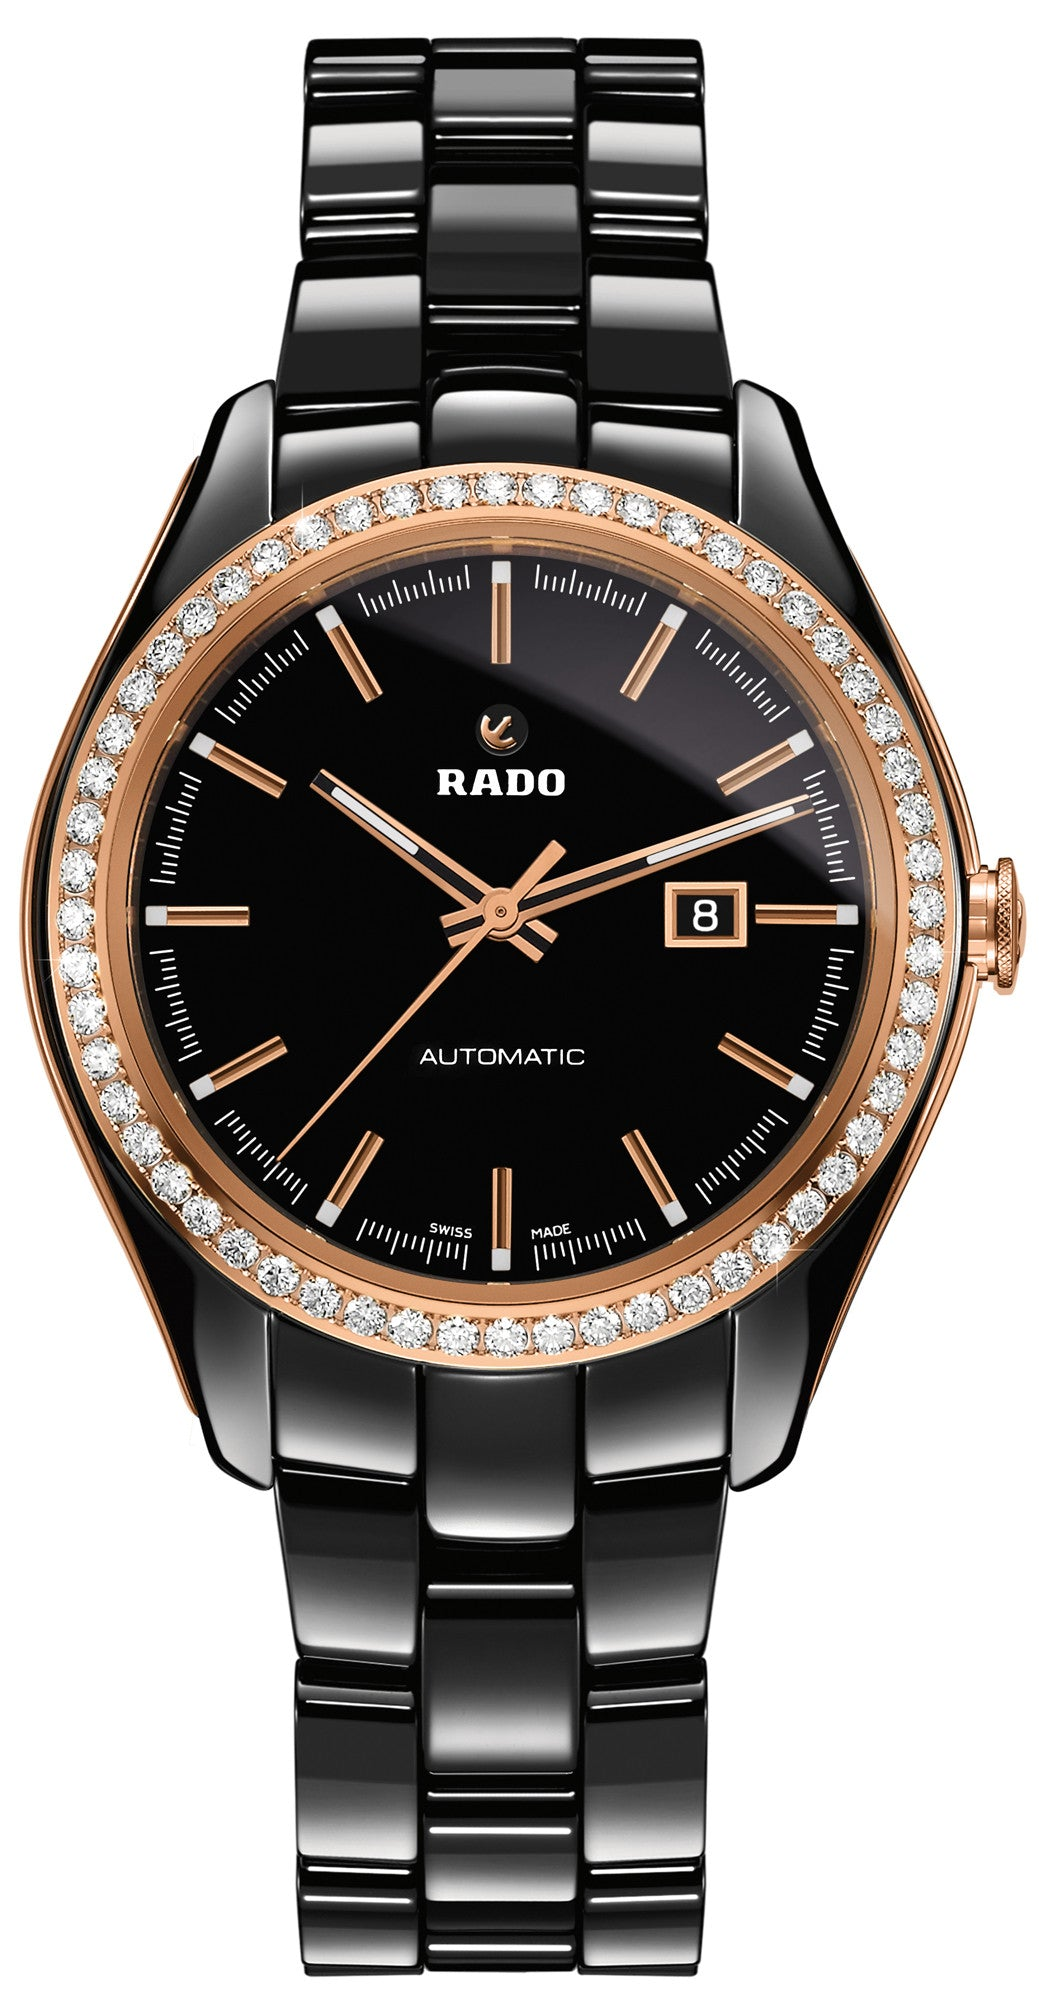 Rado Watch Hyperchrome Diamonds Black Ceramic Limited Edition